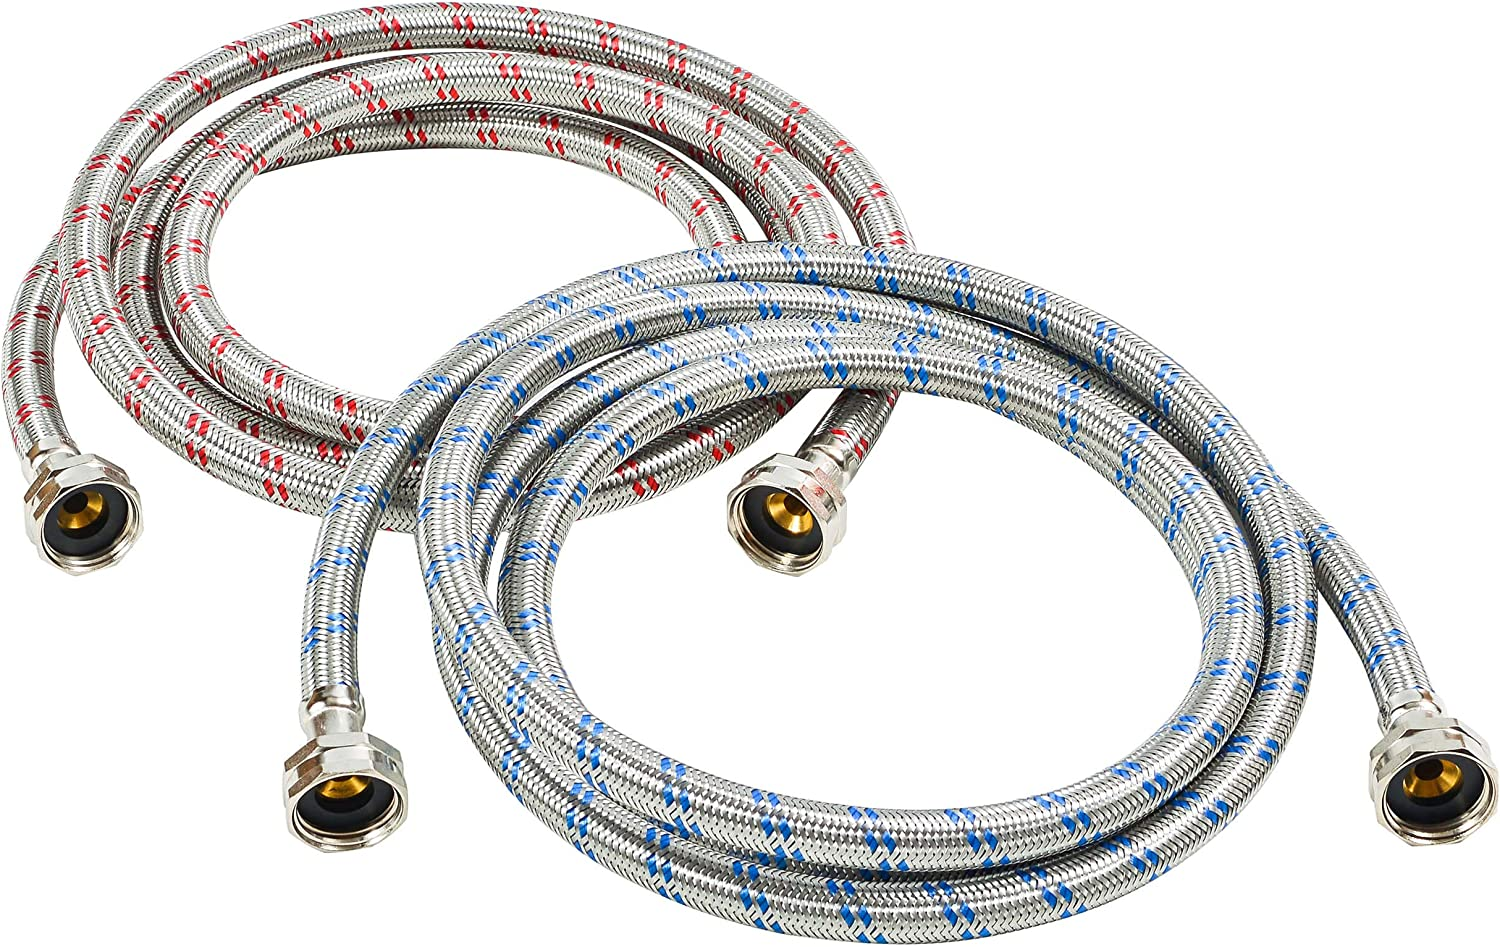 Washing Machine Hoses Stainless Steel Braided Water Supply Line - Burst Proof 2 Pack - Commercial Grade Metric Fittings + Wrench for Easy Installation (6ft)